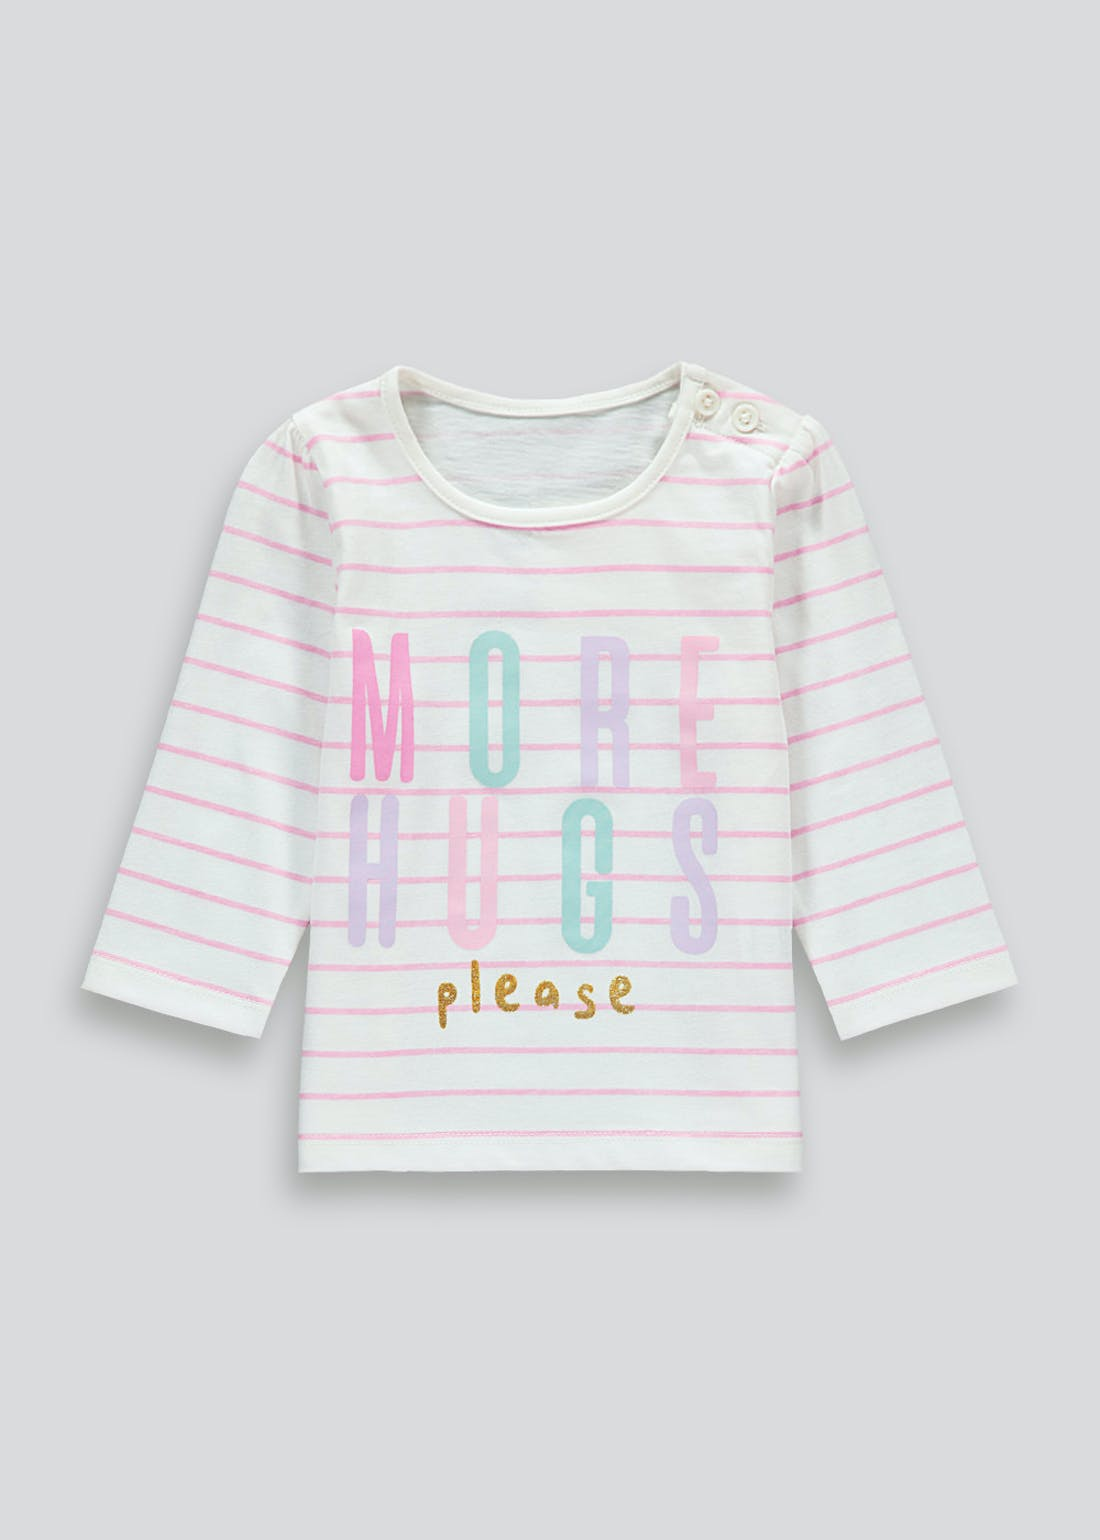 Unisex More Hugs Please T-Shirt (Tiny Baby-23mths)